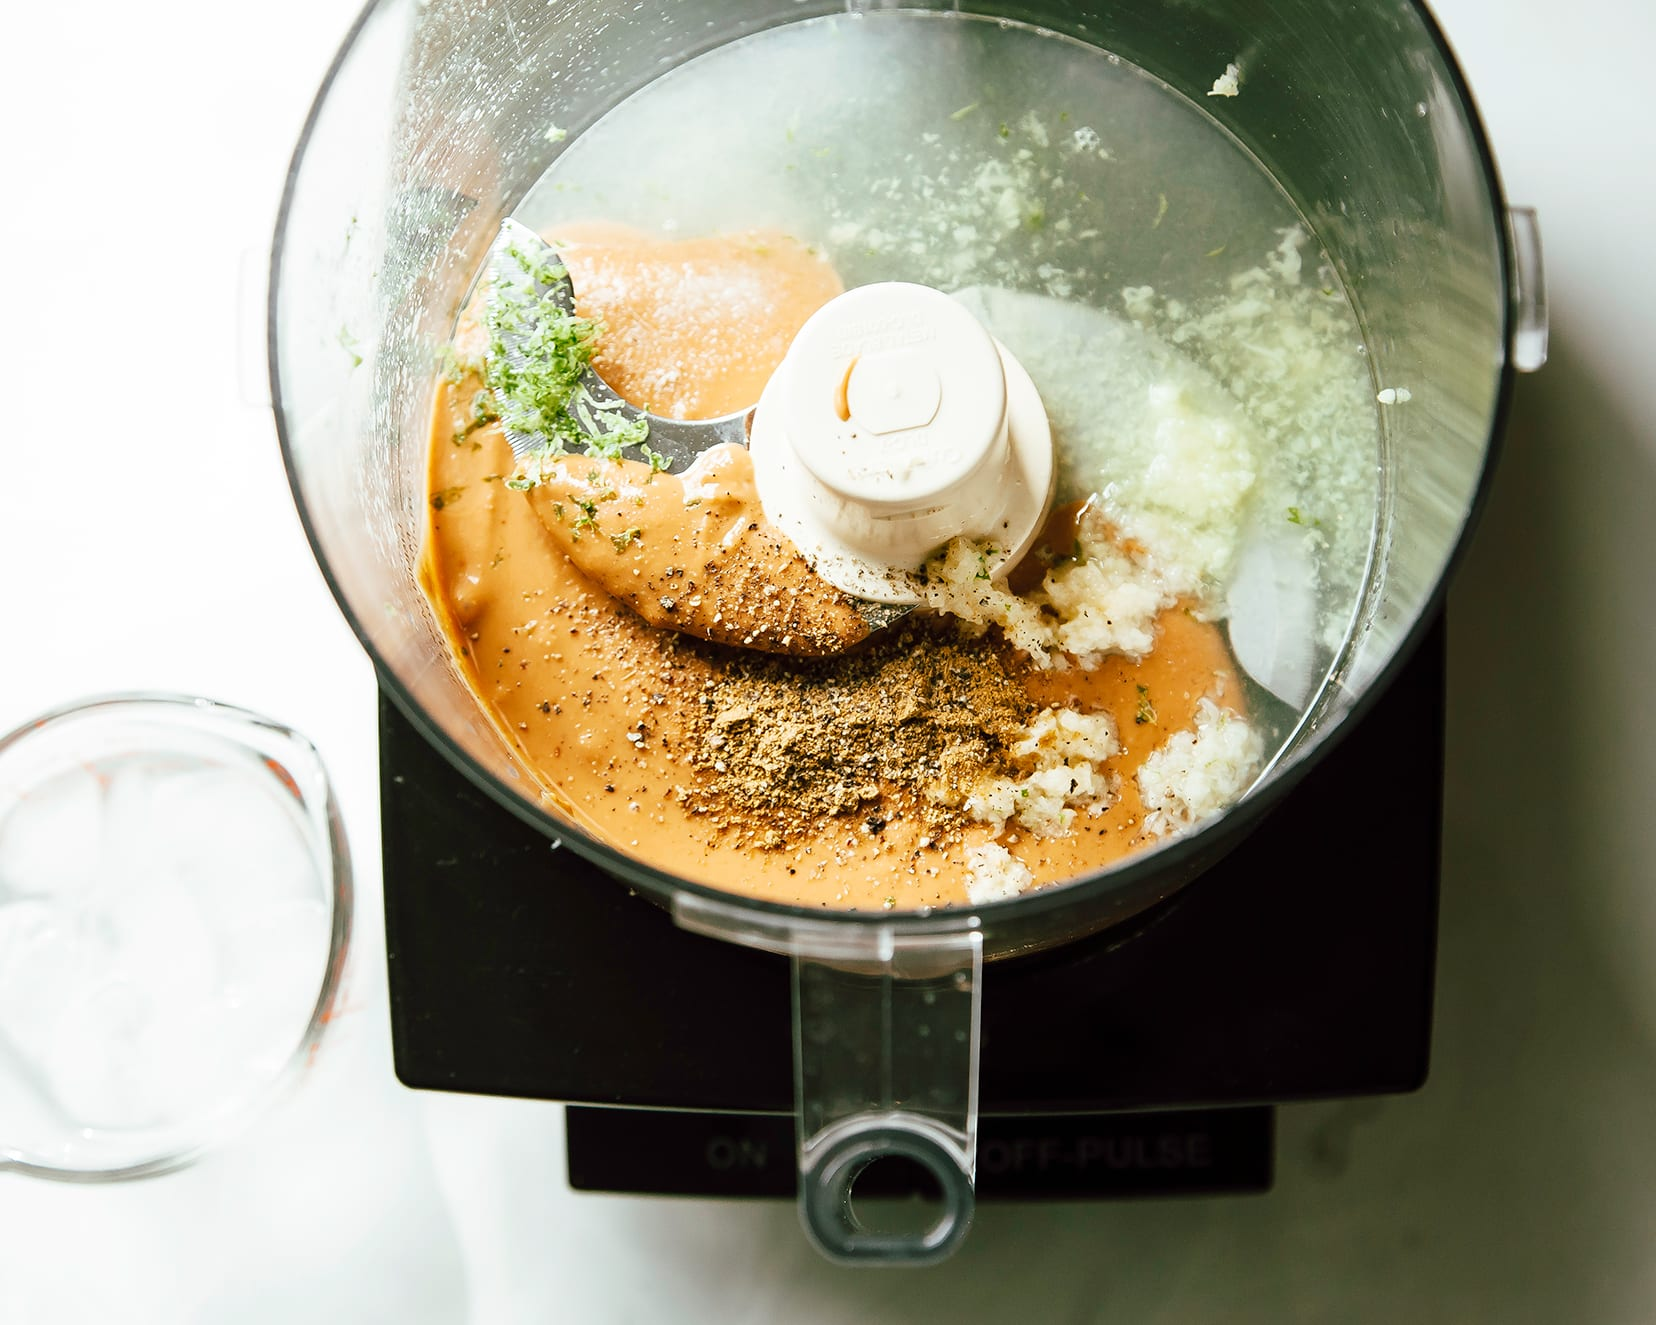 An overhead shot of a food processor with peanut butter lime dressing ingredients inside, pre-mixing.